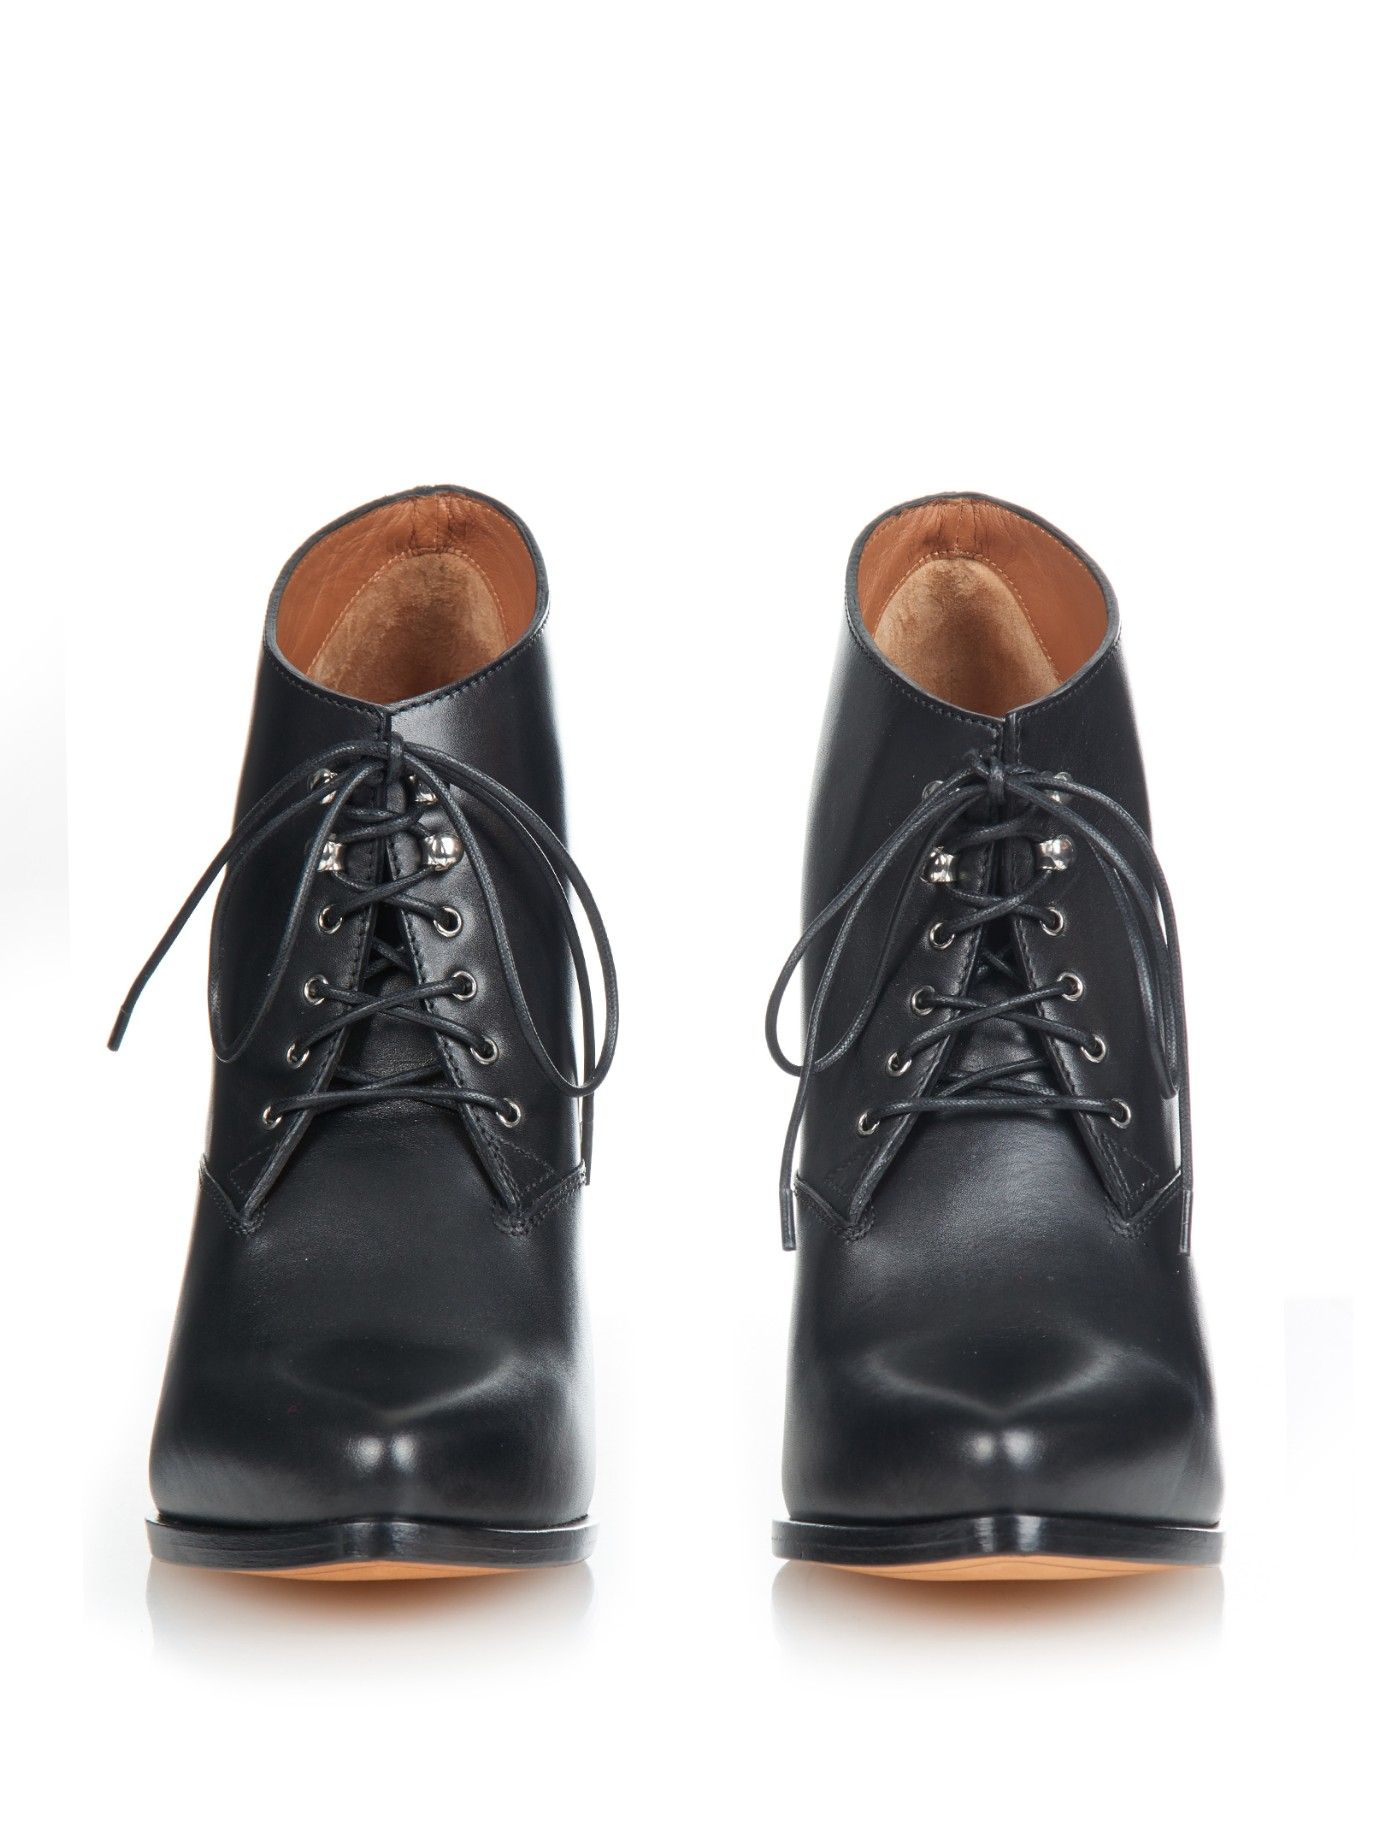 Good Selling Cheap Price Givenchy Leather Lace Ups Cheap Low Price Pre Order Sale Online Pay With Paypal Sale Online yqEhgycjU